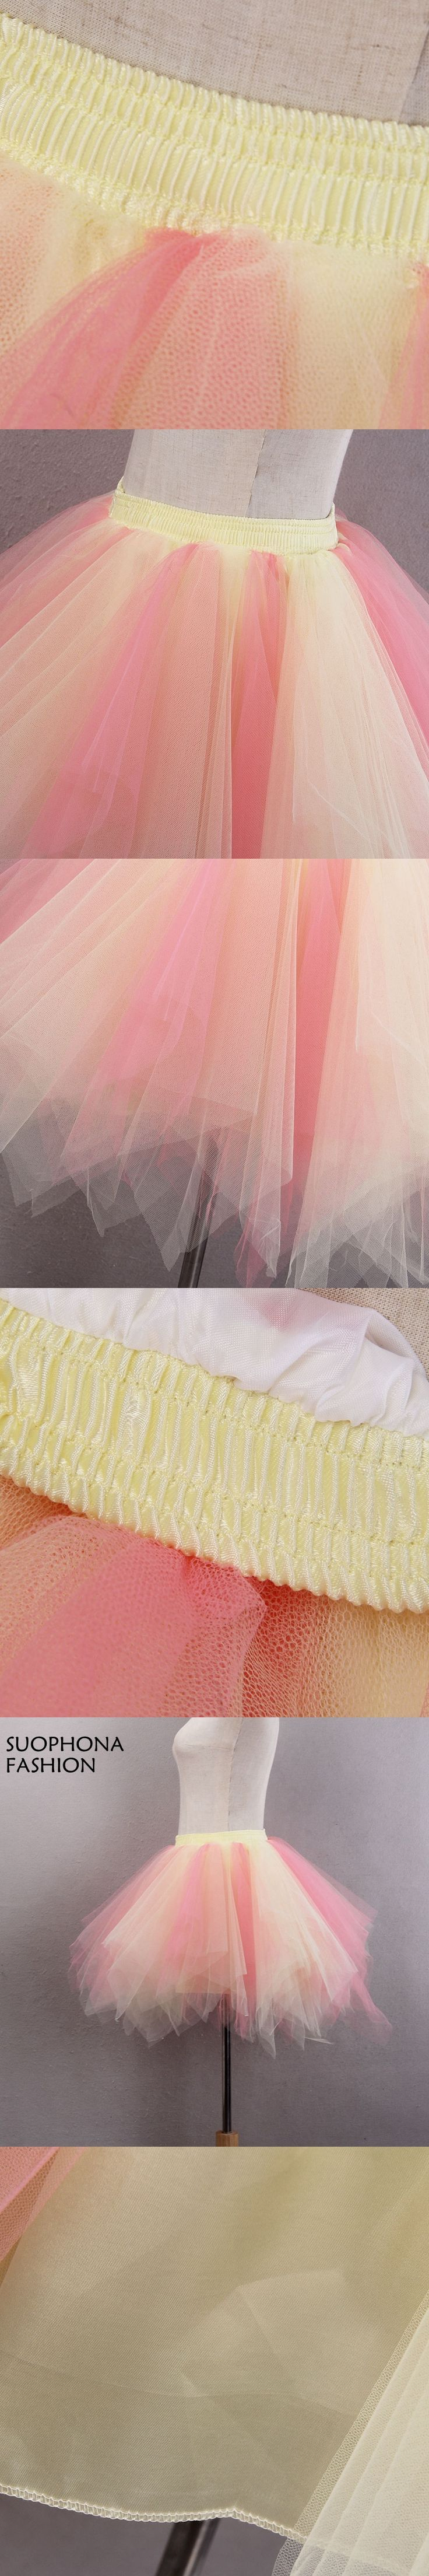 Fashion In stock Short Mini Petticoat Crinoline onderrok Wedding Accessories Petticoats halloween Wedding Gowns jupon mariage